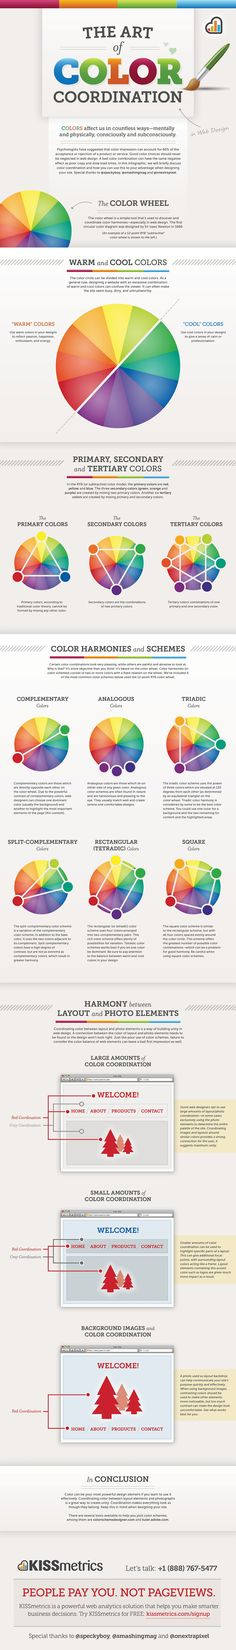 The Art of Colour Coordination | Infographic Like this.